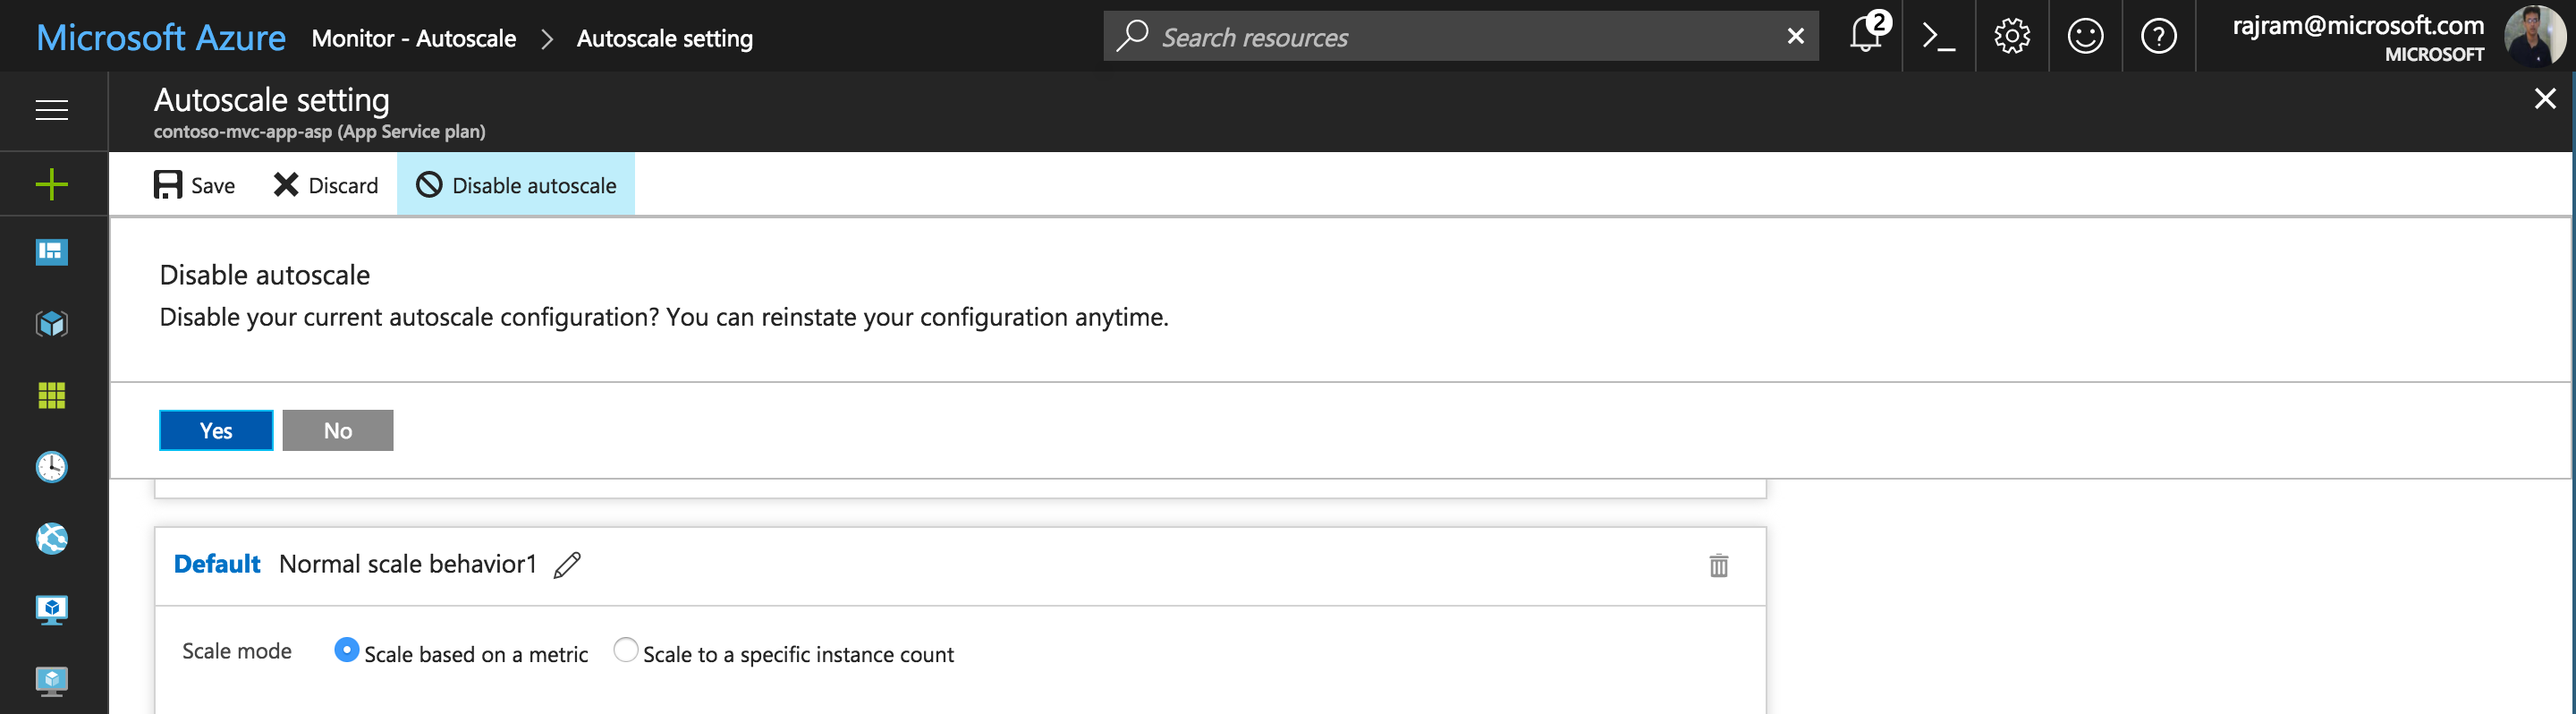 Get started with autoscale in Azure | Microsoft Docs